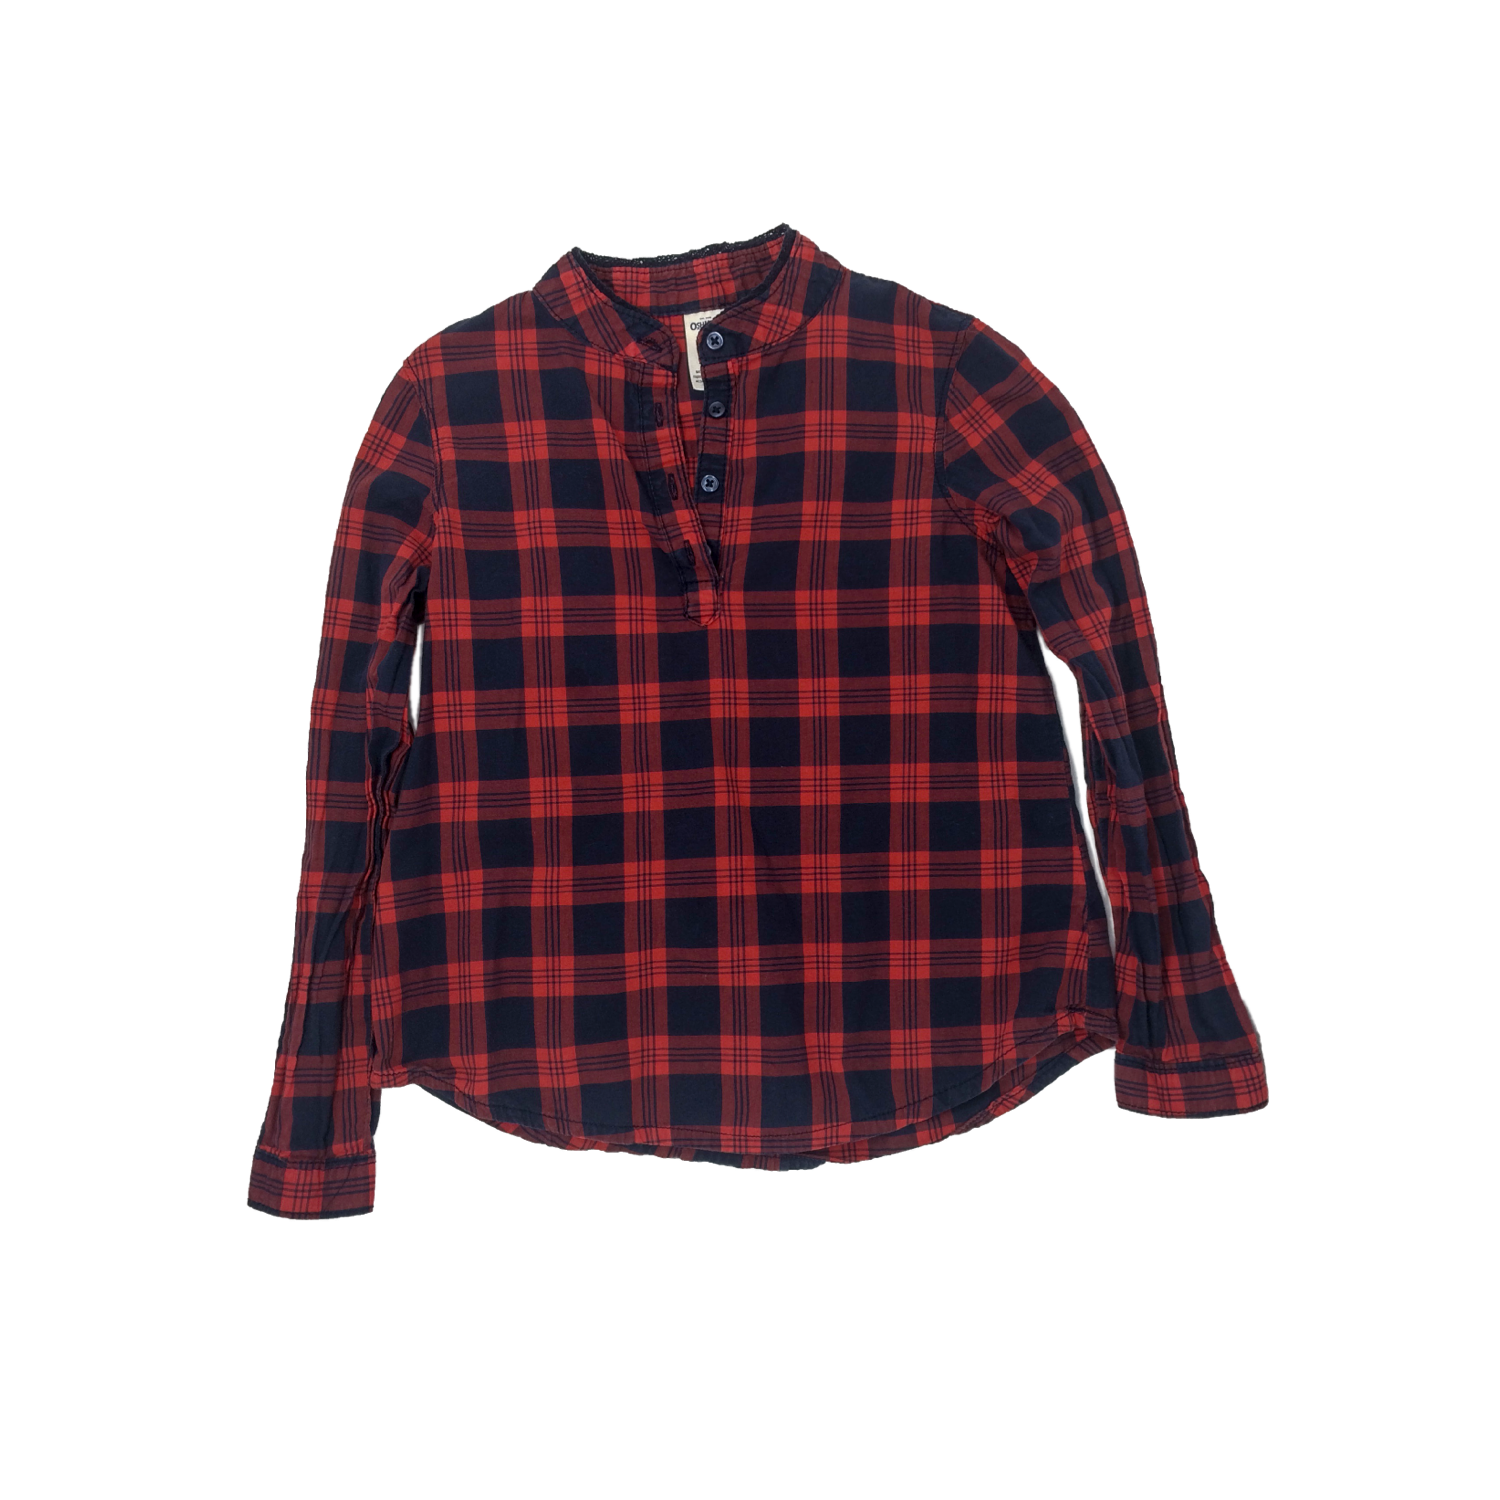 58707aea7 Oshkosh B'Gosh 6X Red Plaid Long Sleeve Henley Shirt – Nouget Kids ...